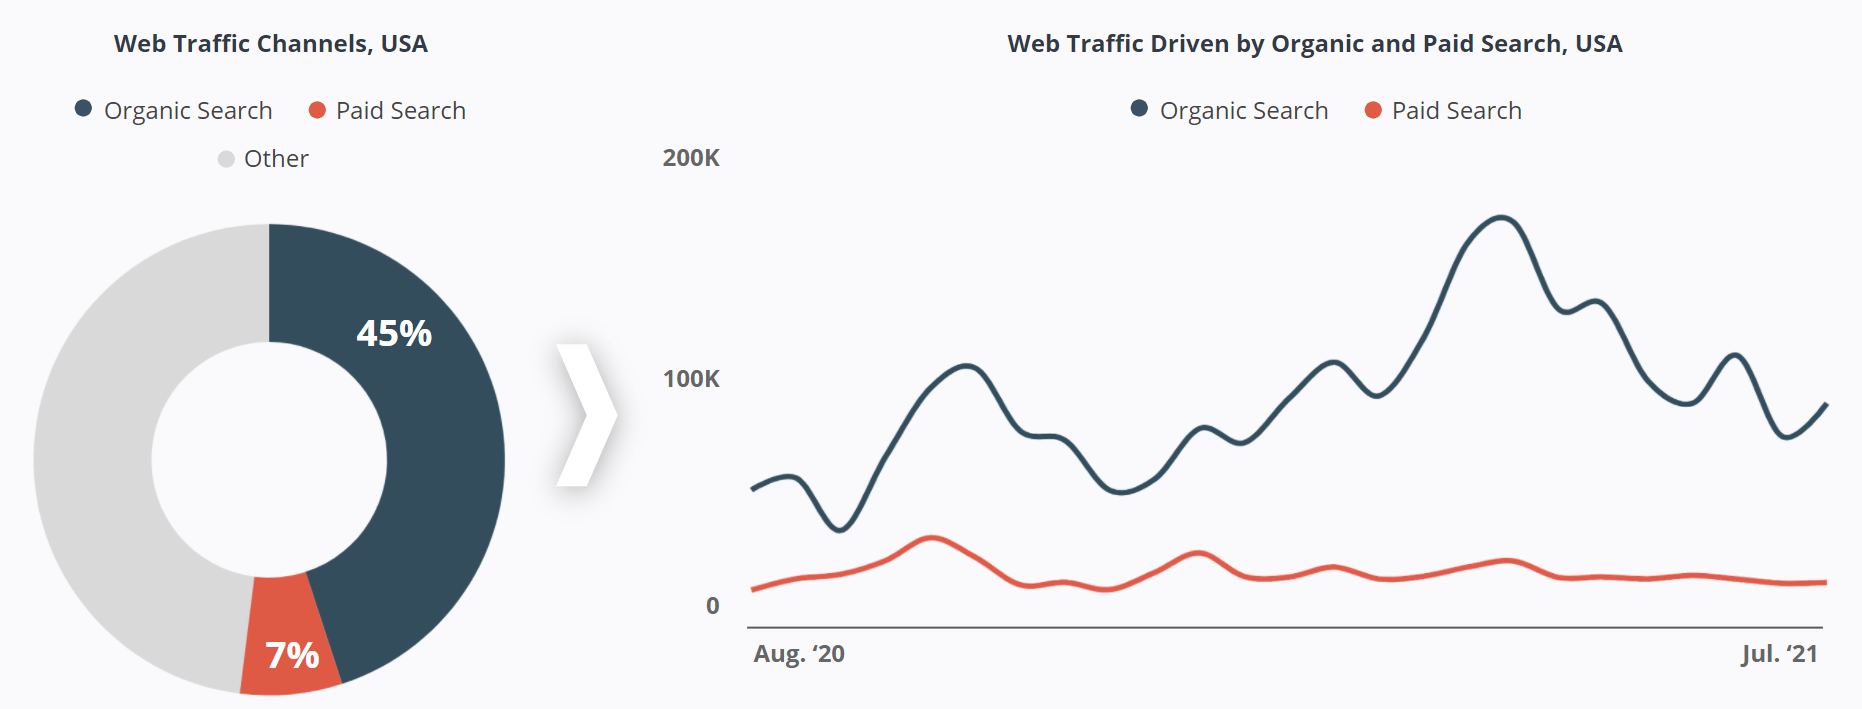 Outdoor Research - Website Traffic Channels - Organic and Paid Search